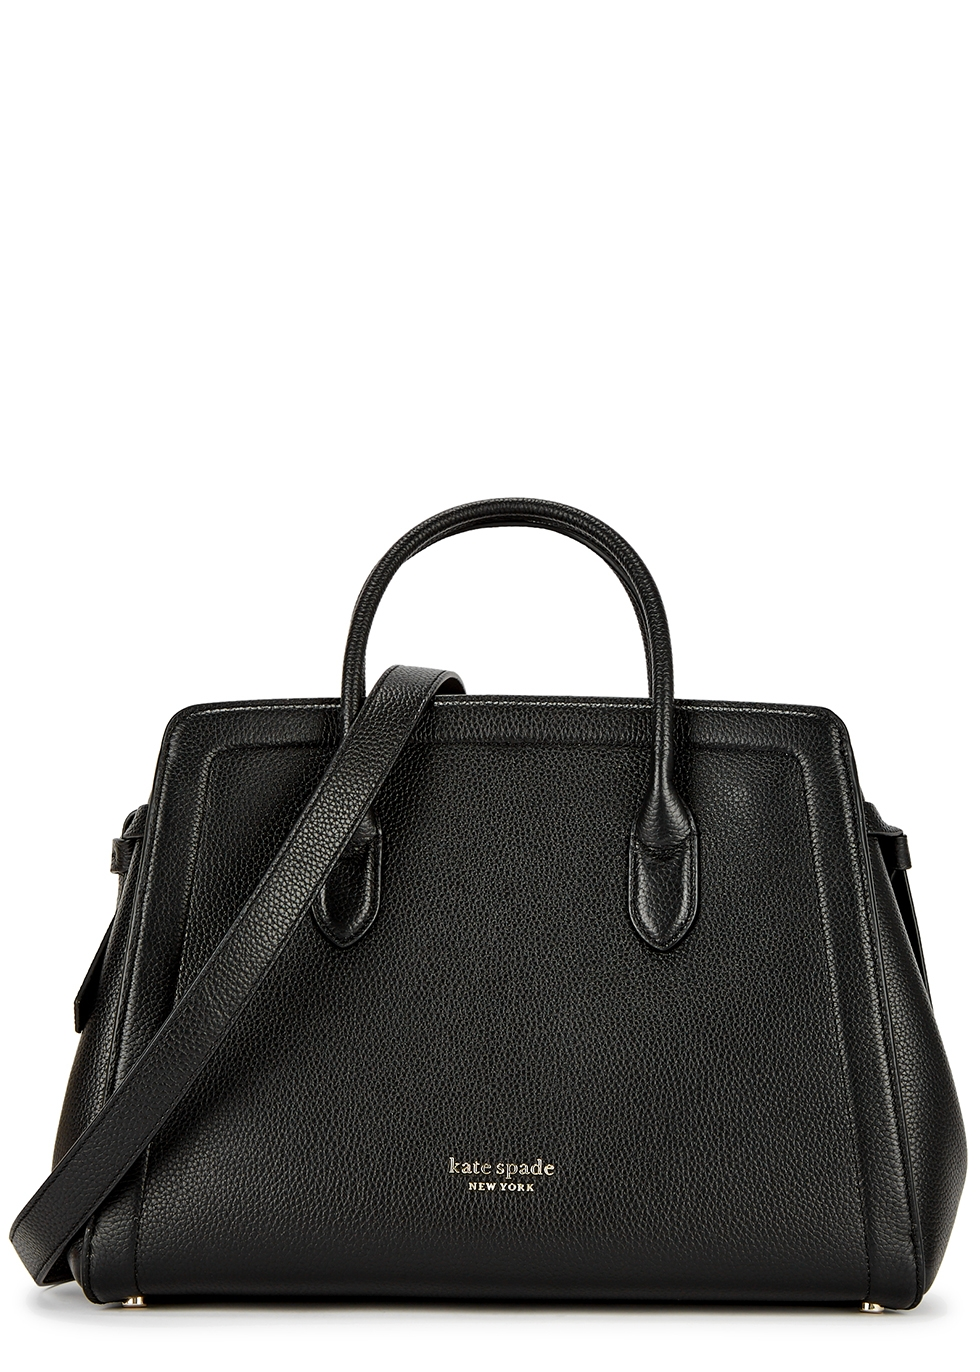 Kate Spade KNOTT LARGE BLACK LEATHER TOP HANDLE BAG